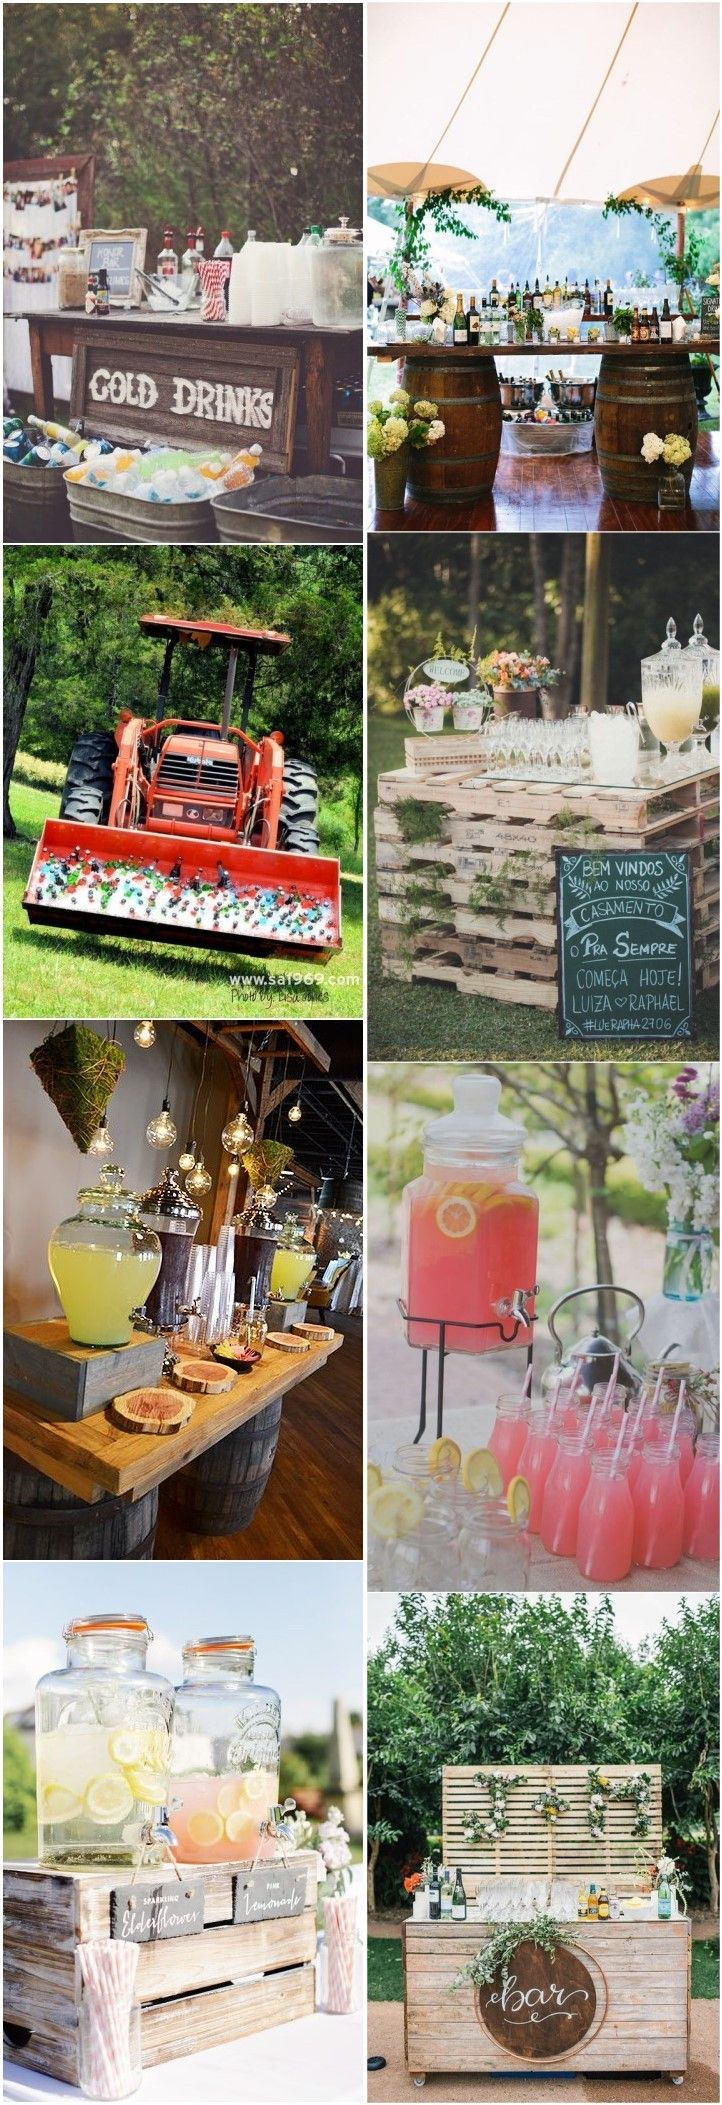 5 Admirable Wedding Food and Drink Bar Ideas recommend